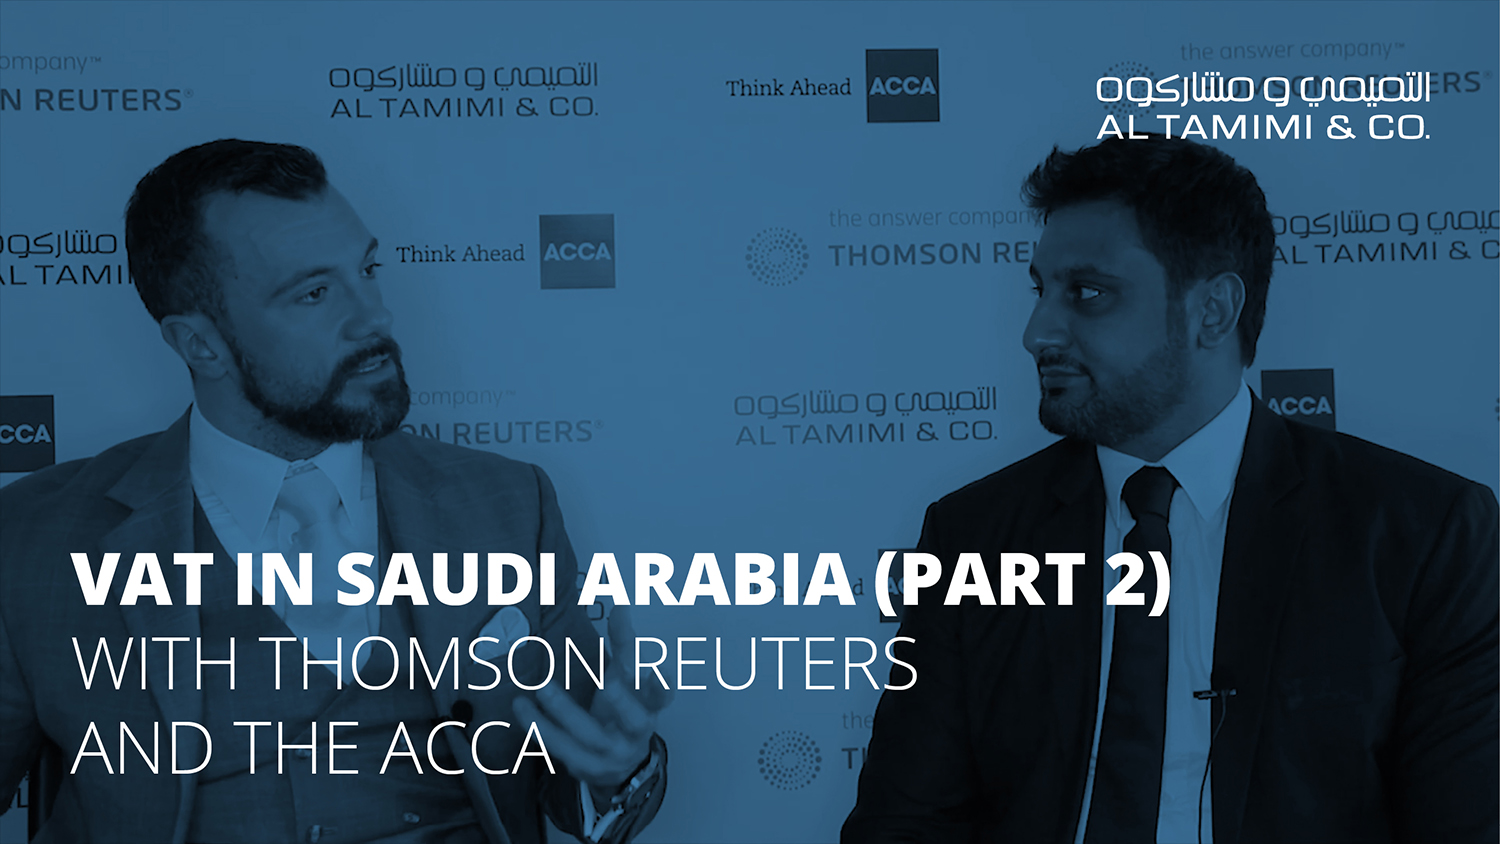 Legal Snapshot: VAT in Saudi Arabia with Thomson Reuters and the ACCA (Part 2)